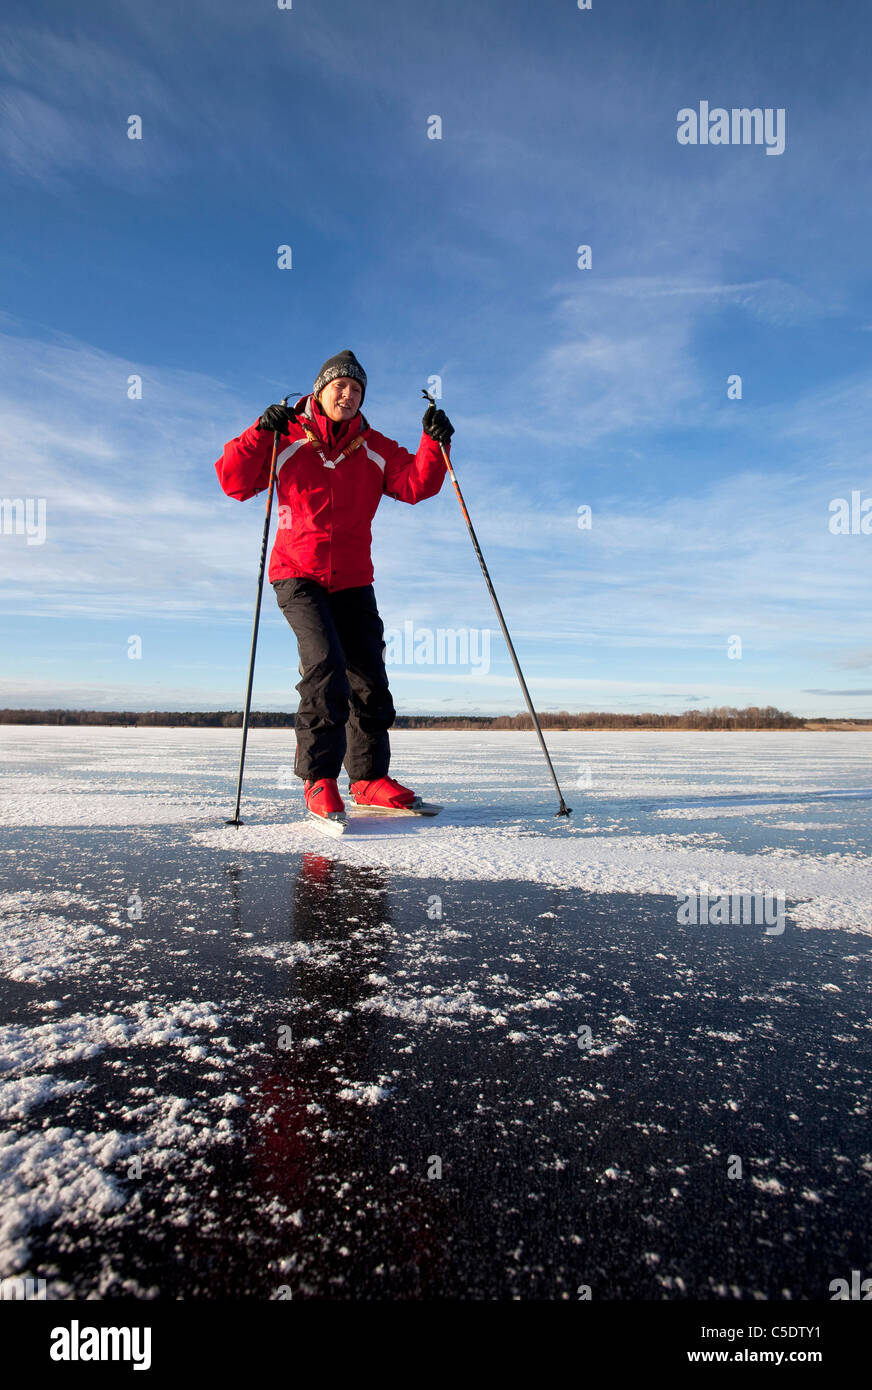 Full length of a woman with skates on frozen lake against the sky - Stock Image